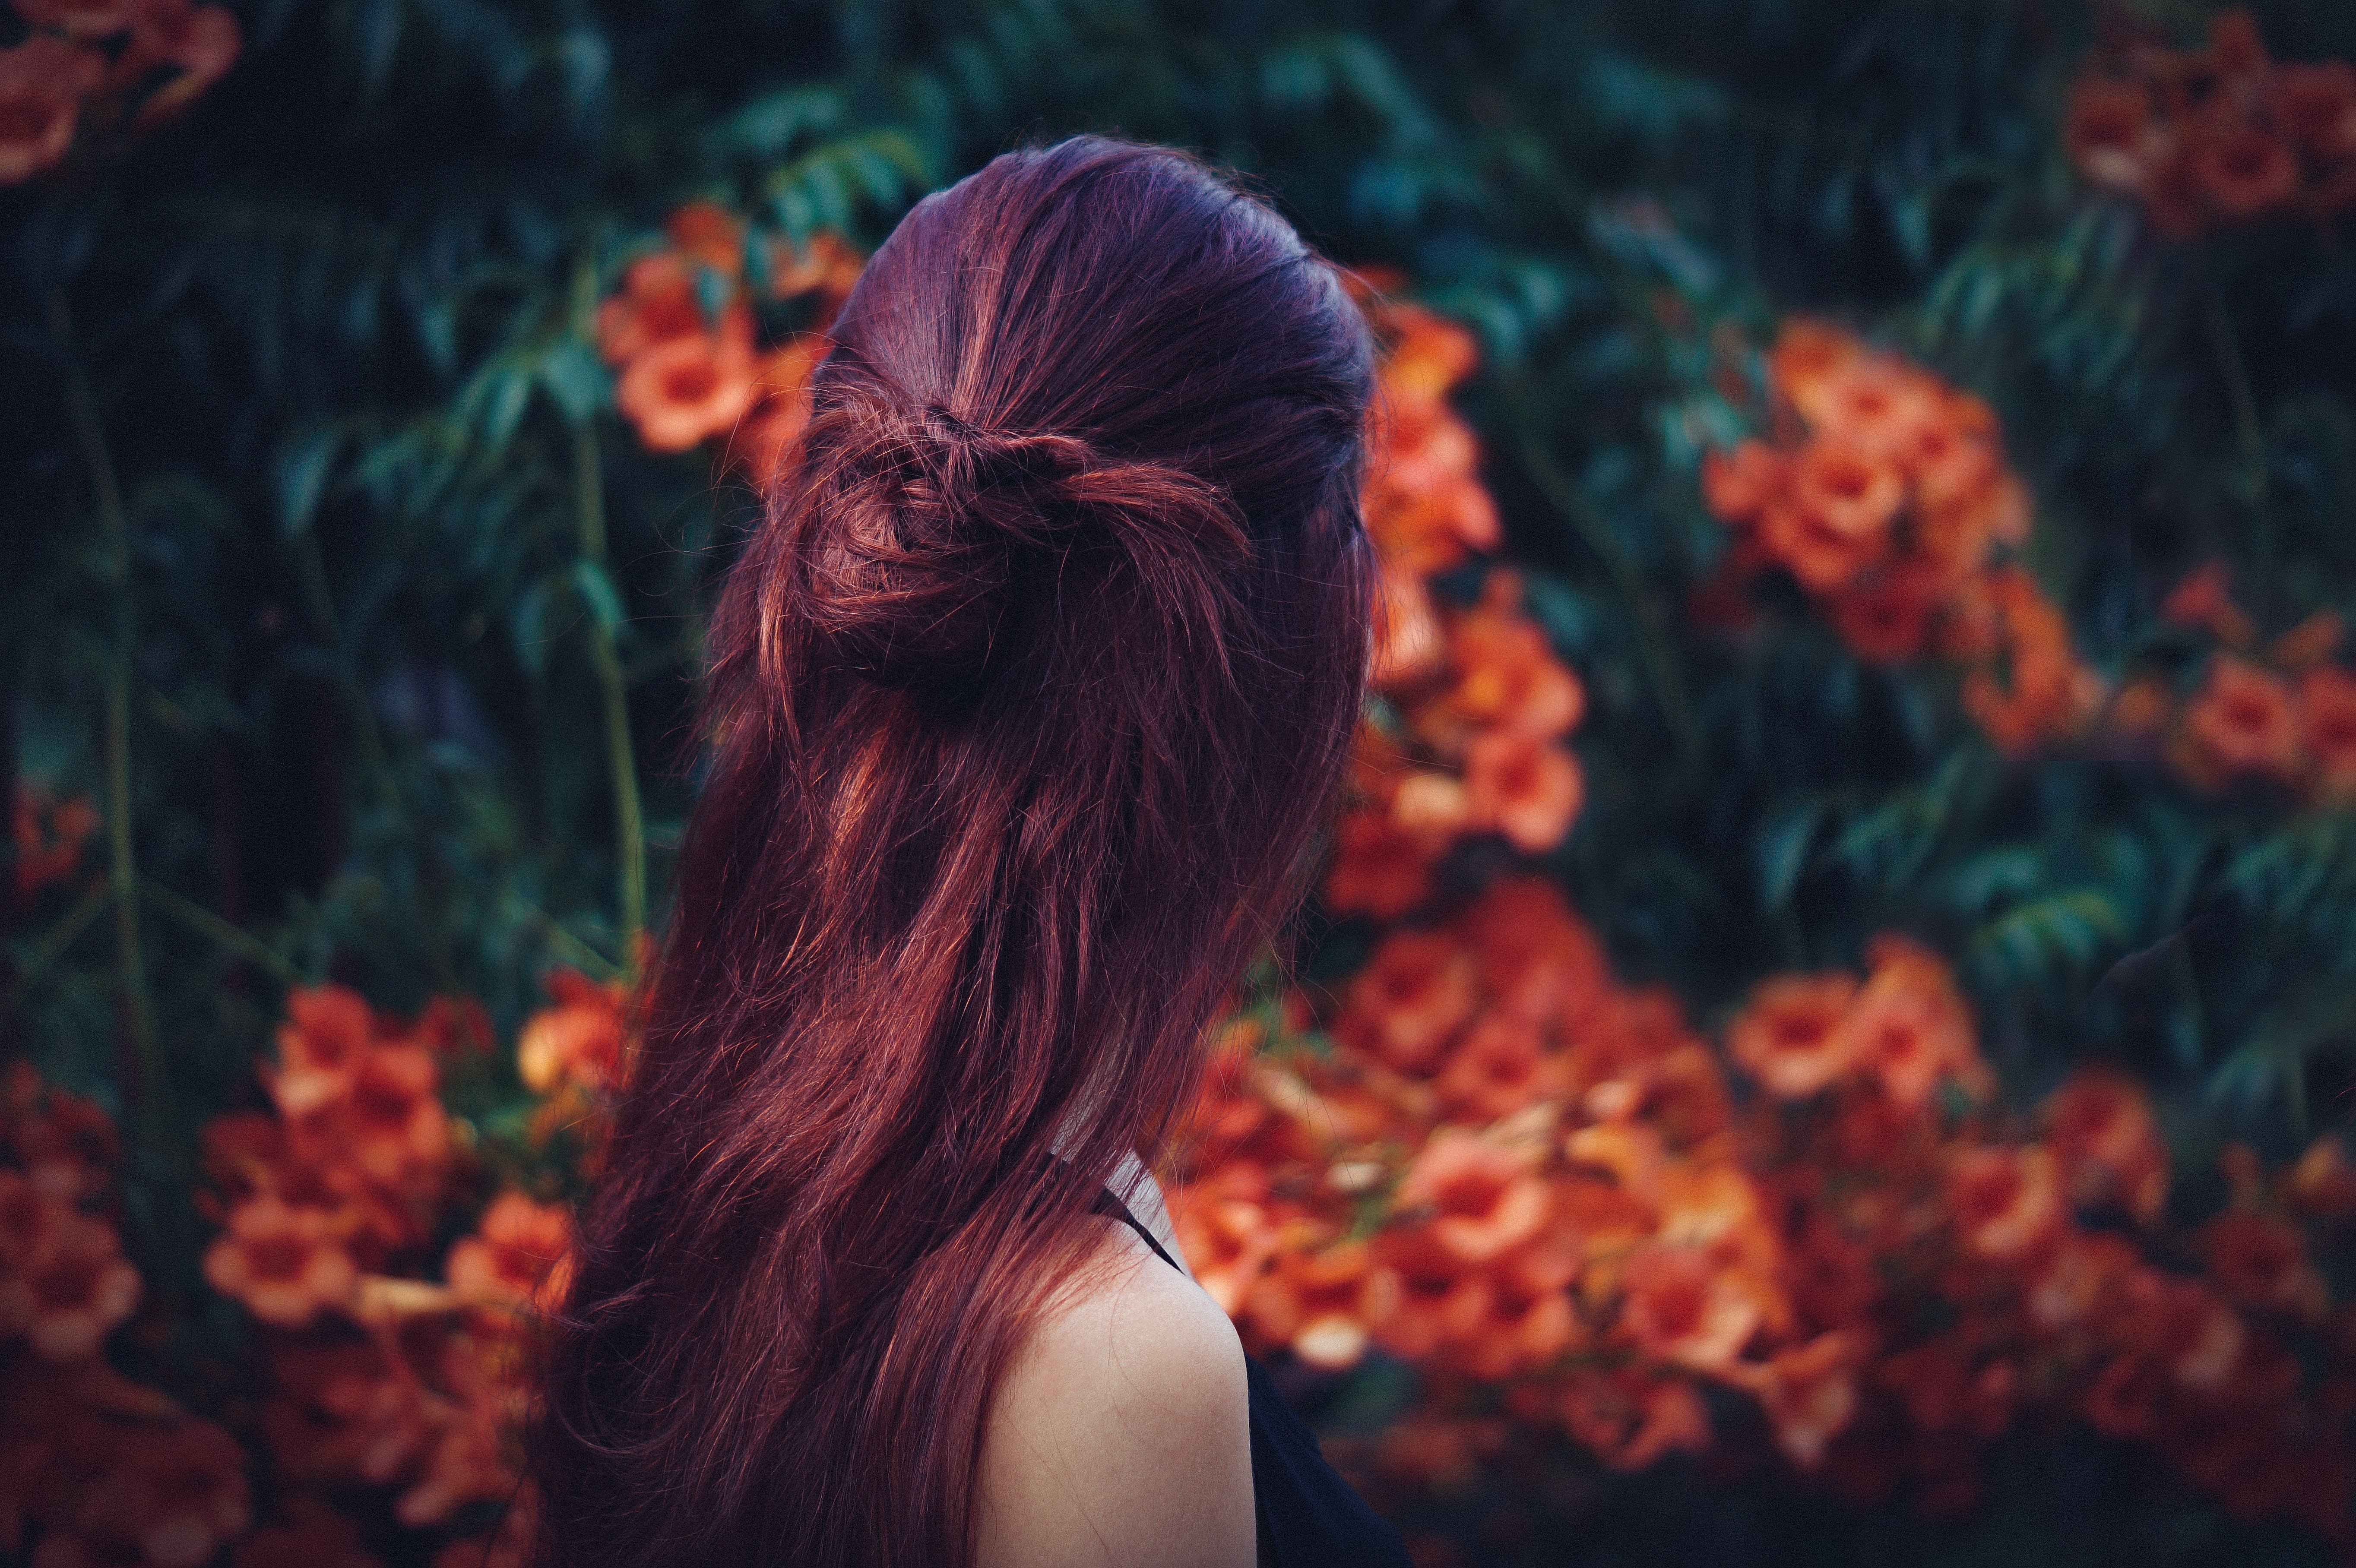 The back of the head of a dark-haired woman in a garden full of red flowers